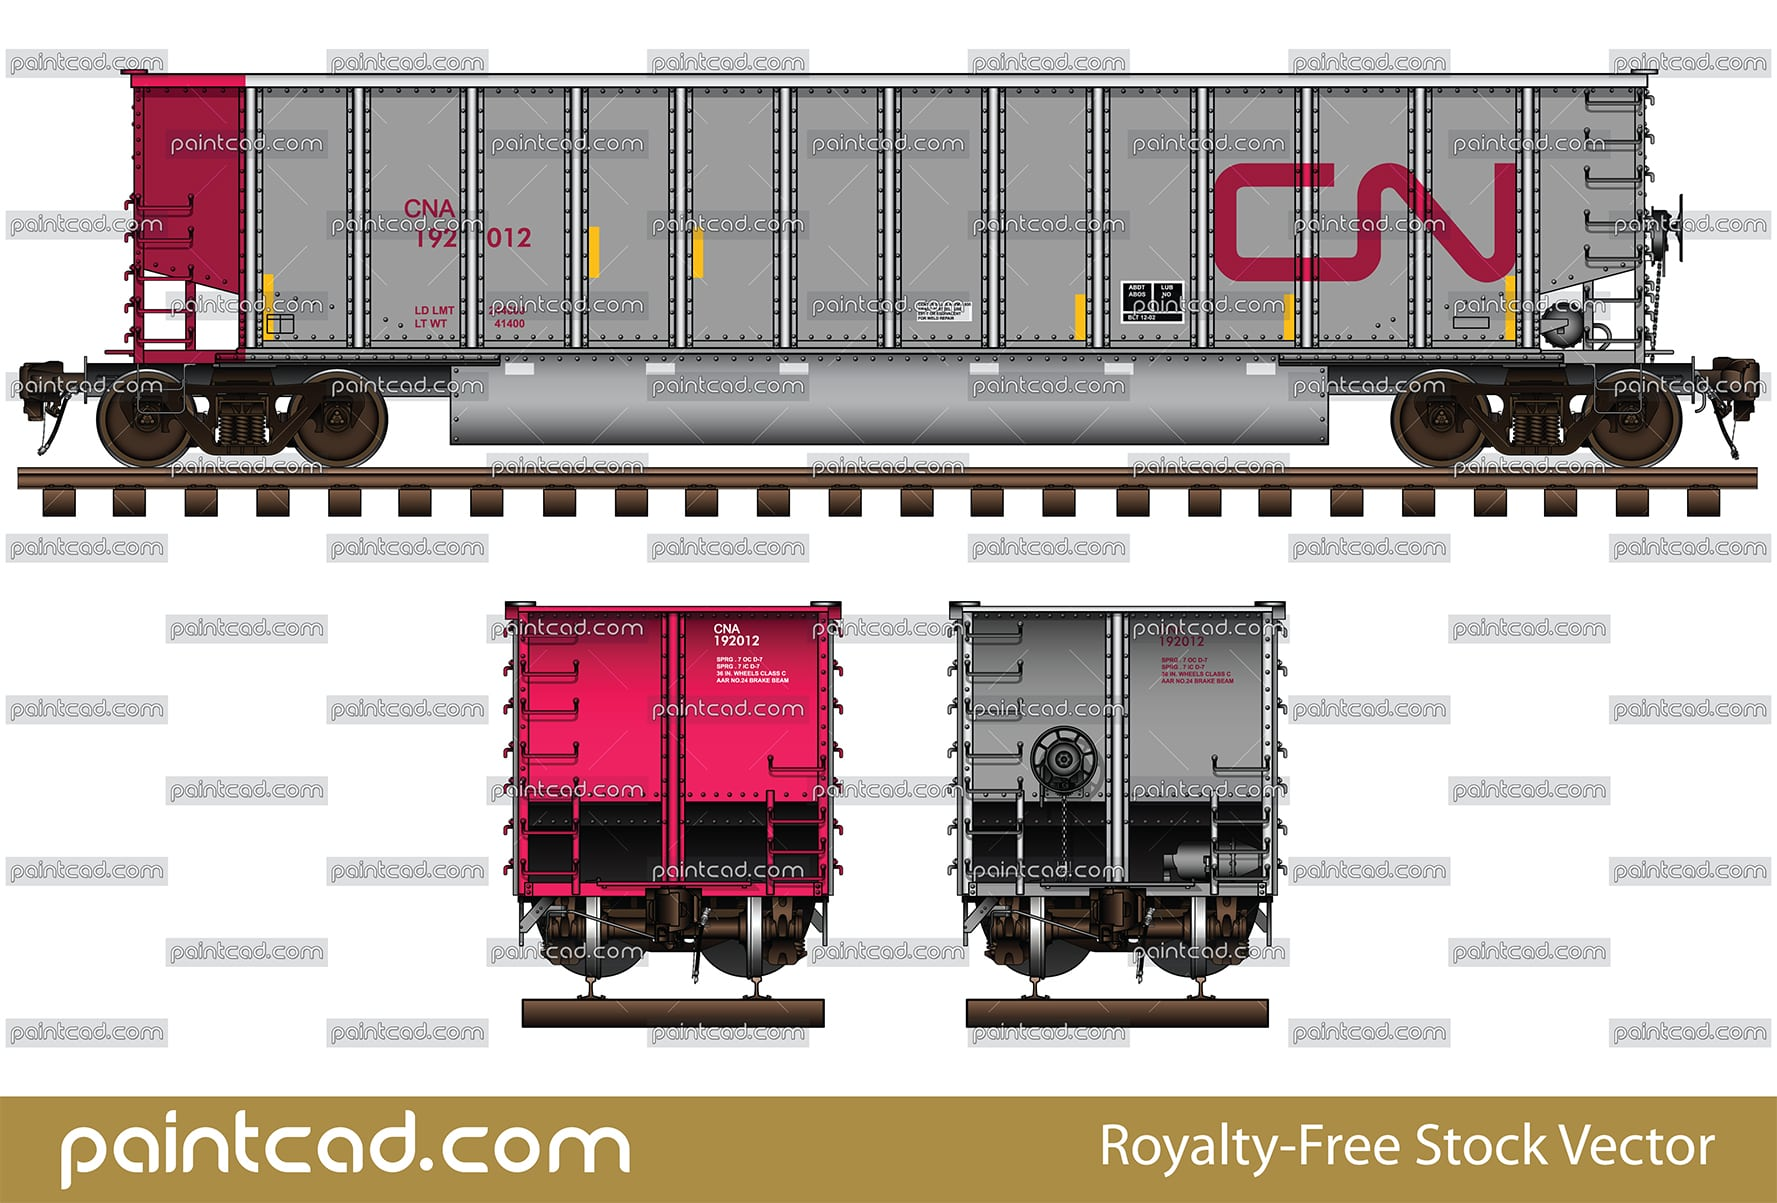 Coalporter car in livery of Canadian National Railway - CN - vector illustration